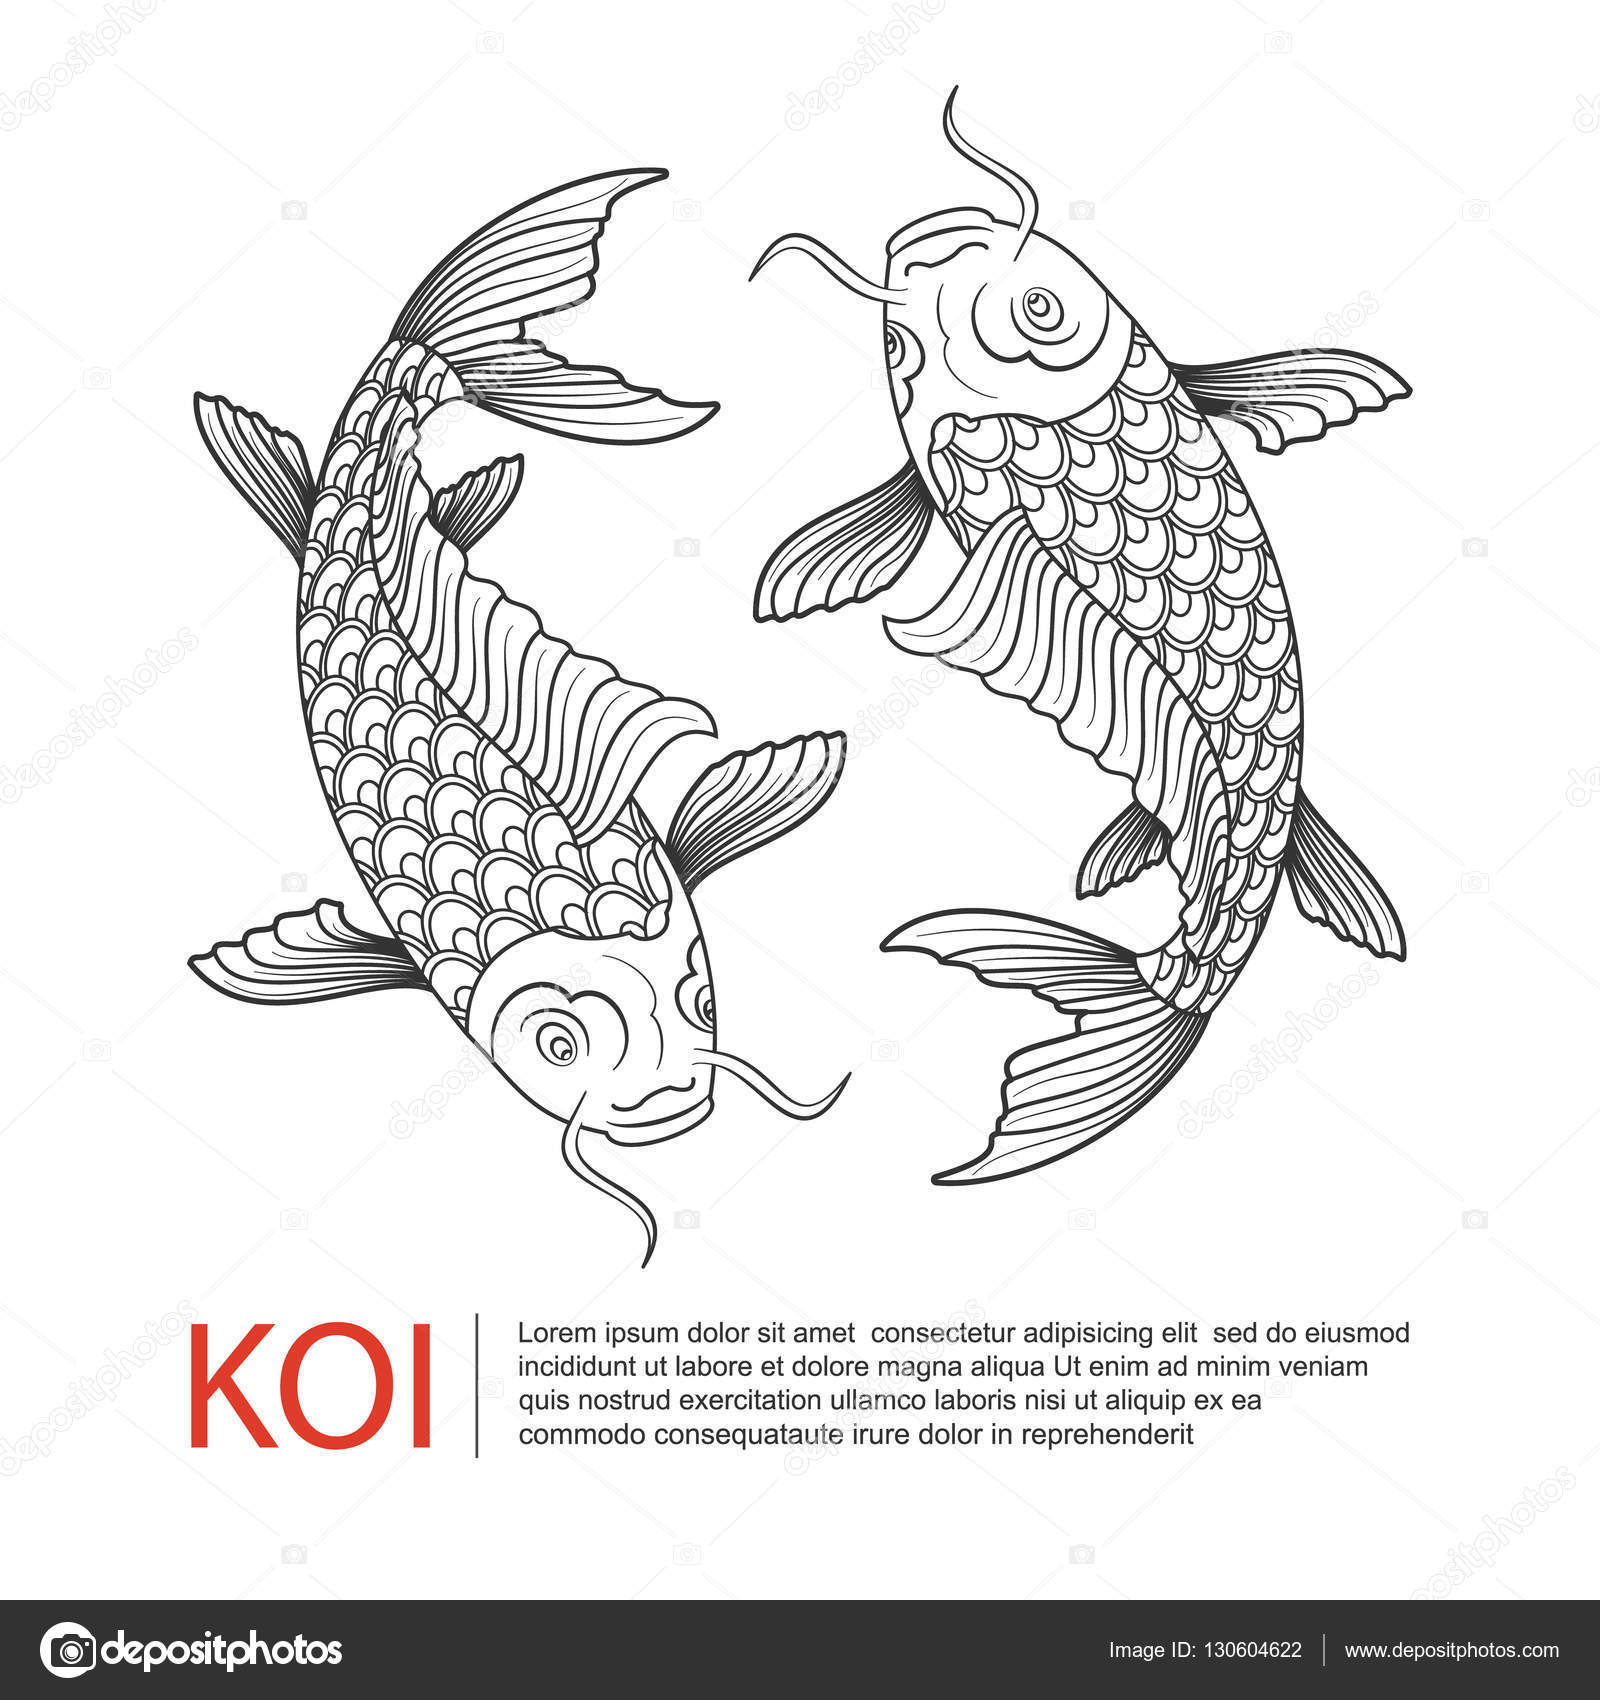 dessin au trait dessin s la main de la carpe ko carpe poisson logo vecteur image. Black Bedroom Furniture Sets. Home Design Ideas